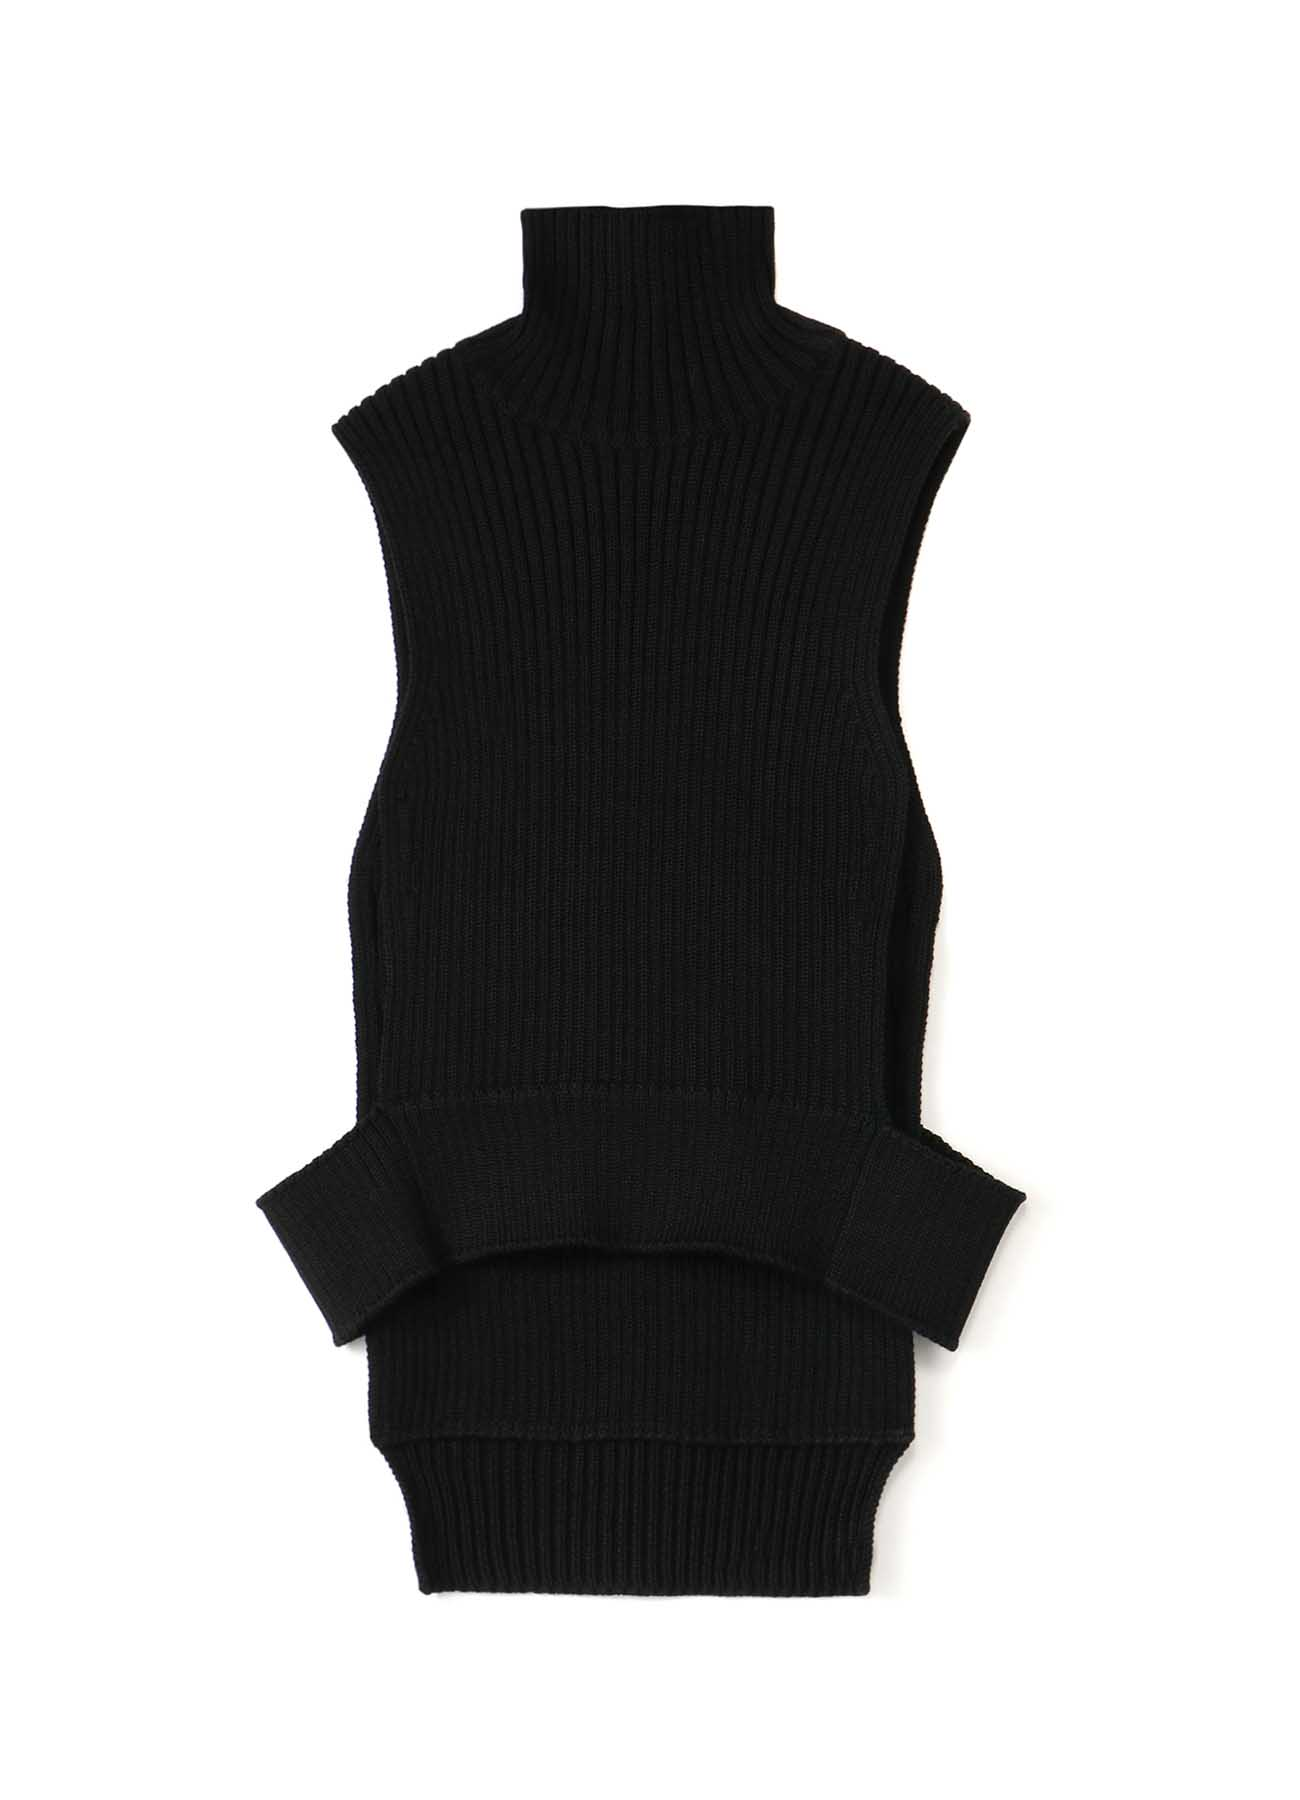 2/47 AIR WOOL R-HIGH NECK VEST